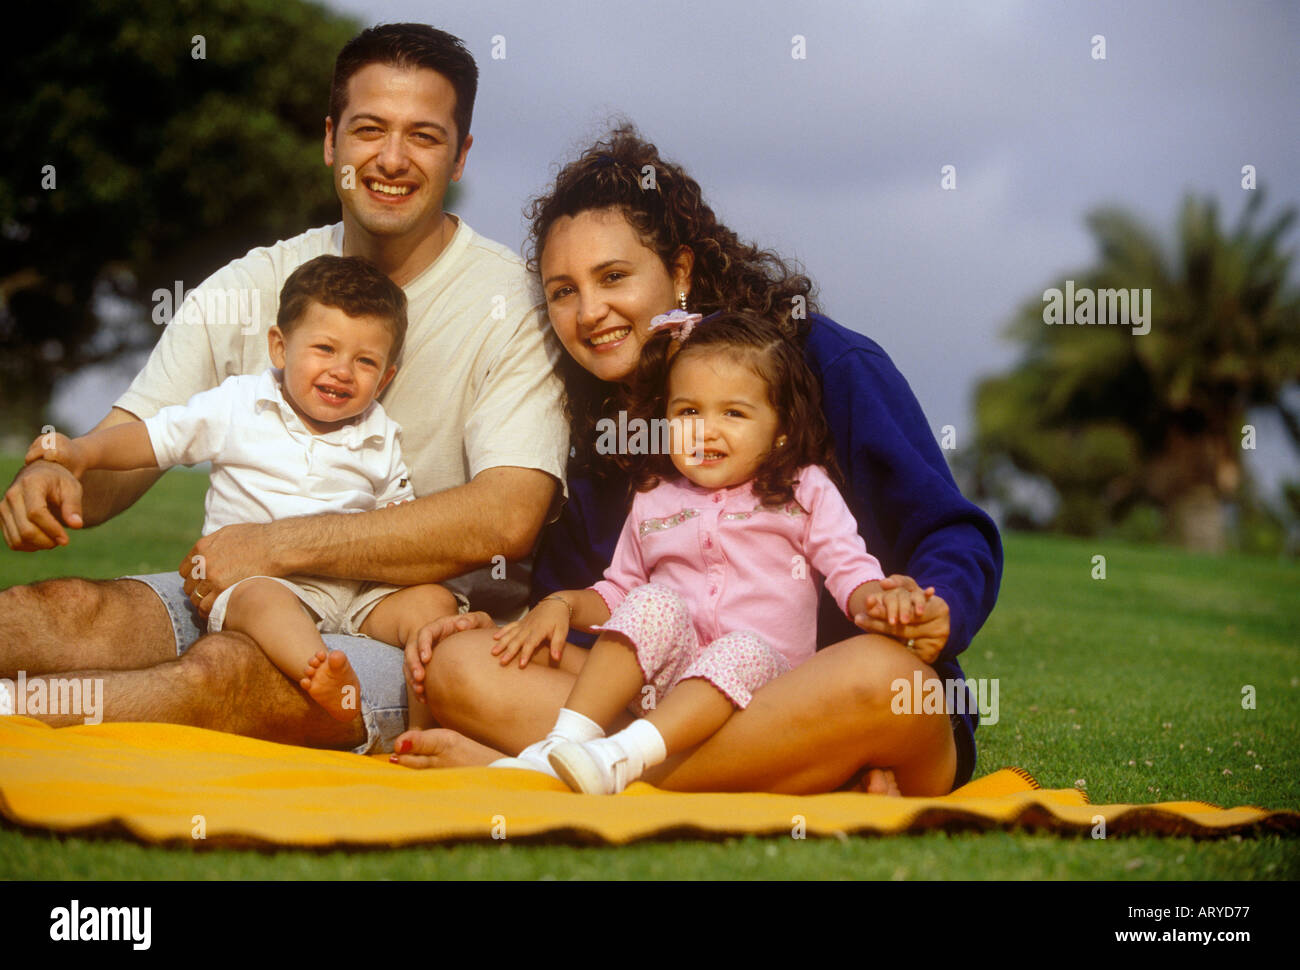 Young hispanic family sitting on a blanket in a park - Stock Image